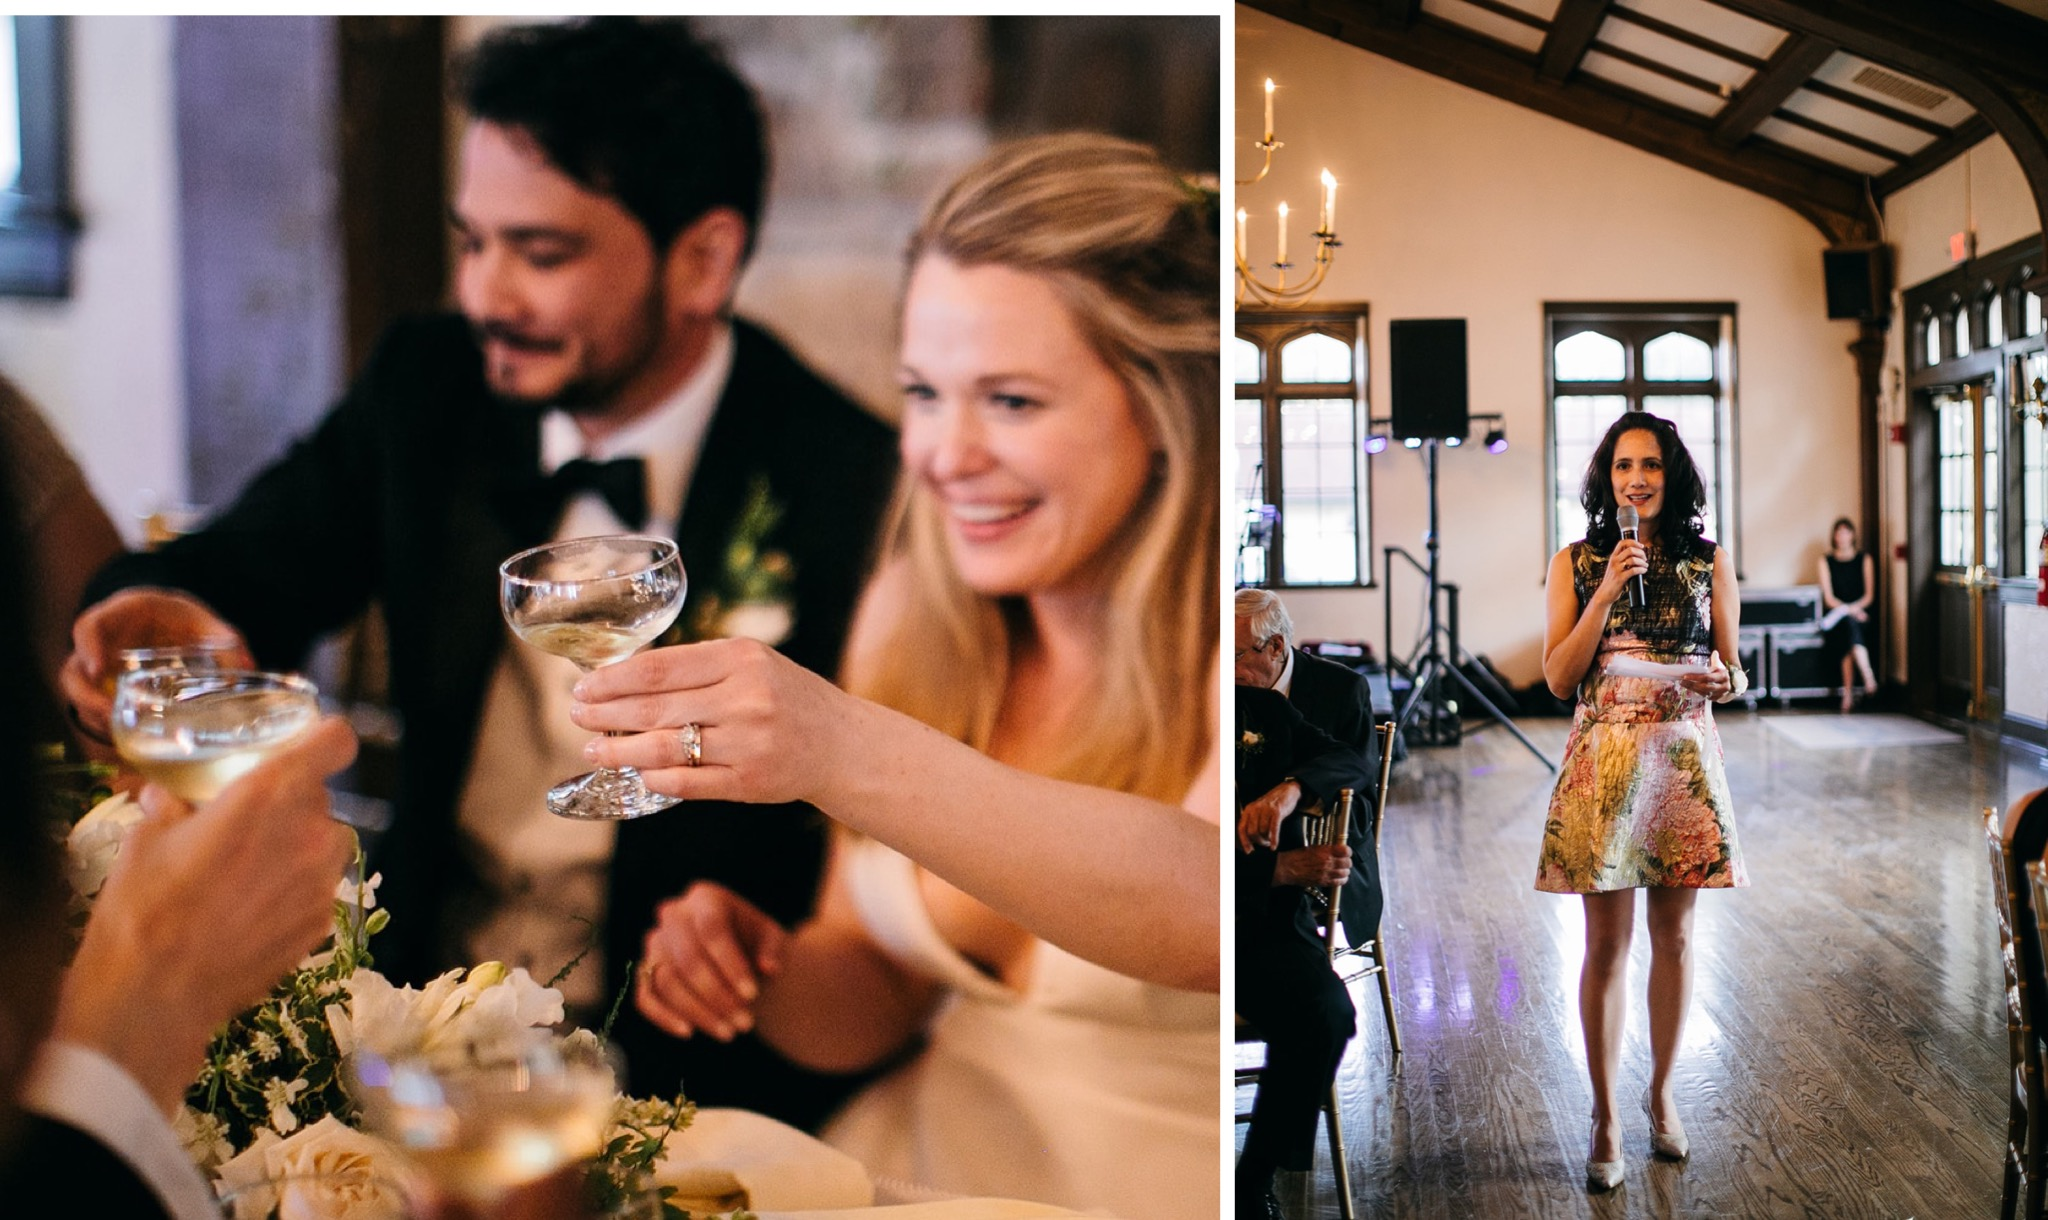 bride raises her glass to toast while a woman gives a speech